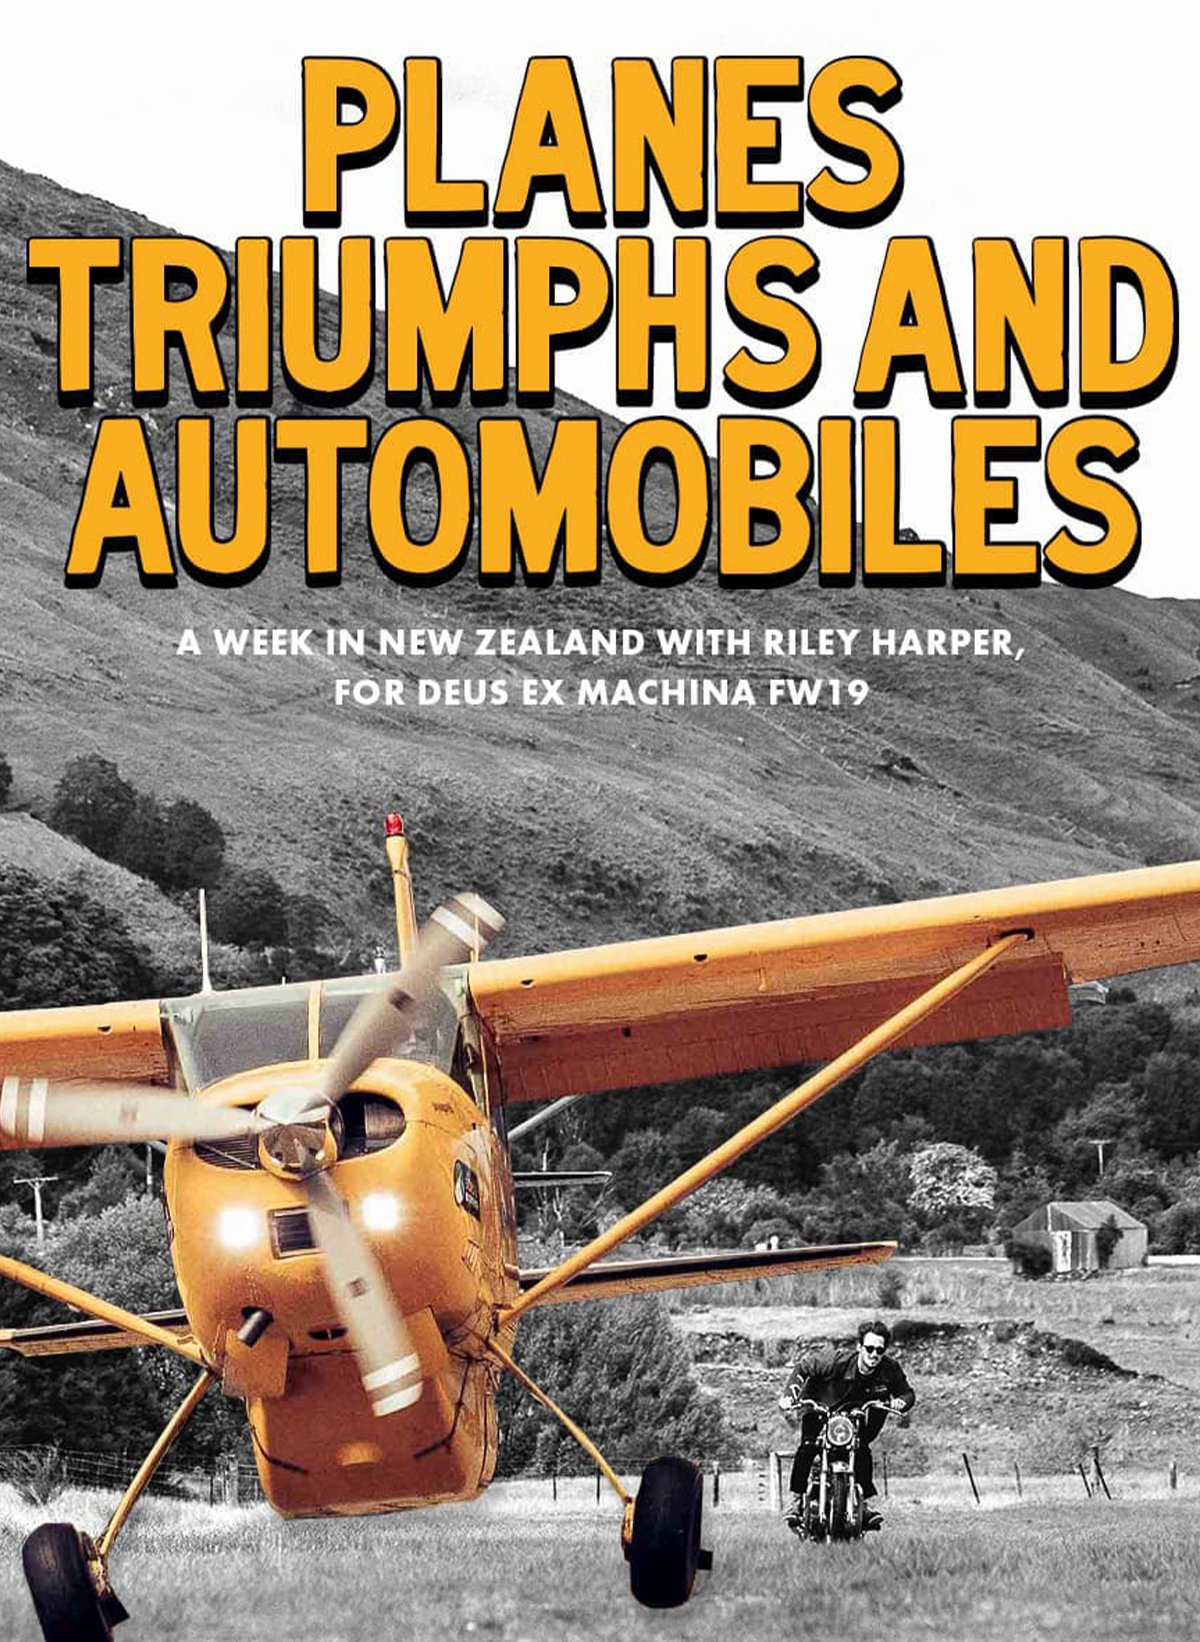 Planes, Triumphs & Automobiles - Behind The Scenes in New Zealand